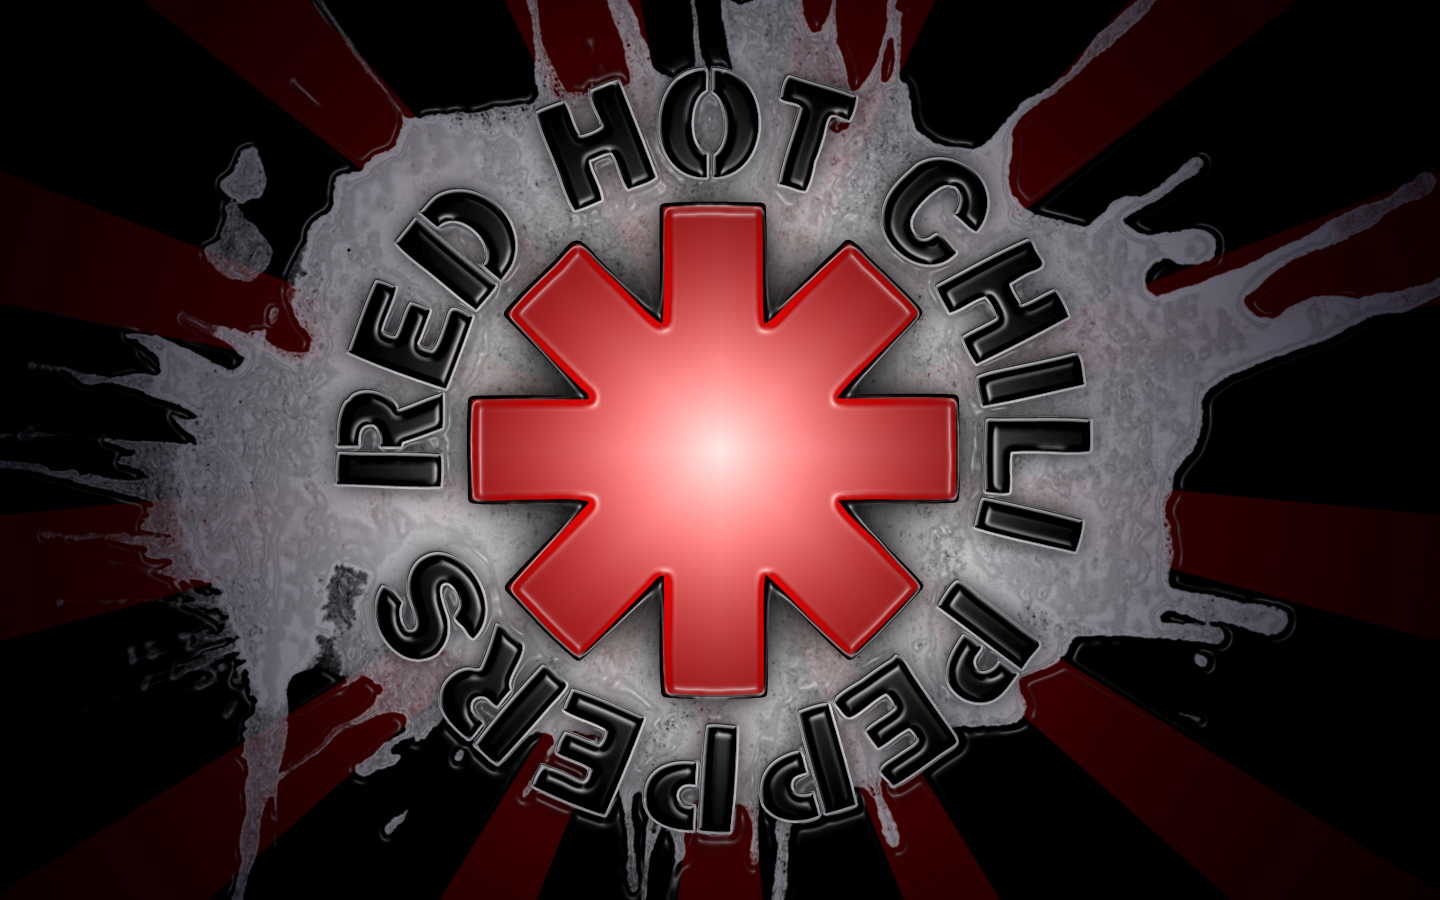 red hot chili peppers by saccamano on deviantart. Black Bedroom Furniture Sets. Home Design Ideas